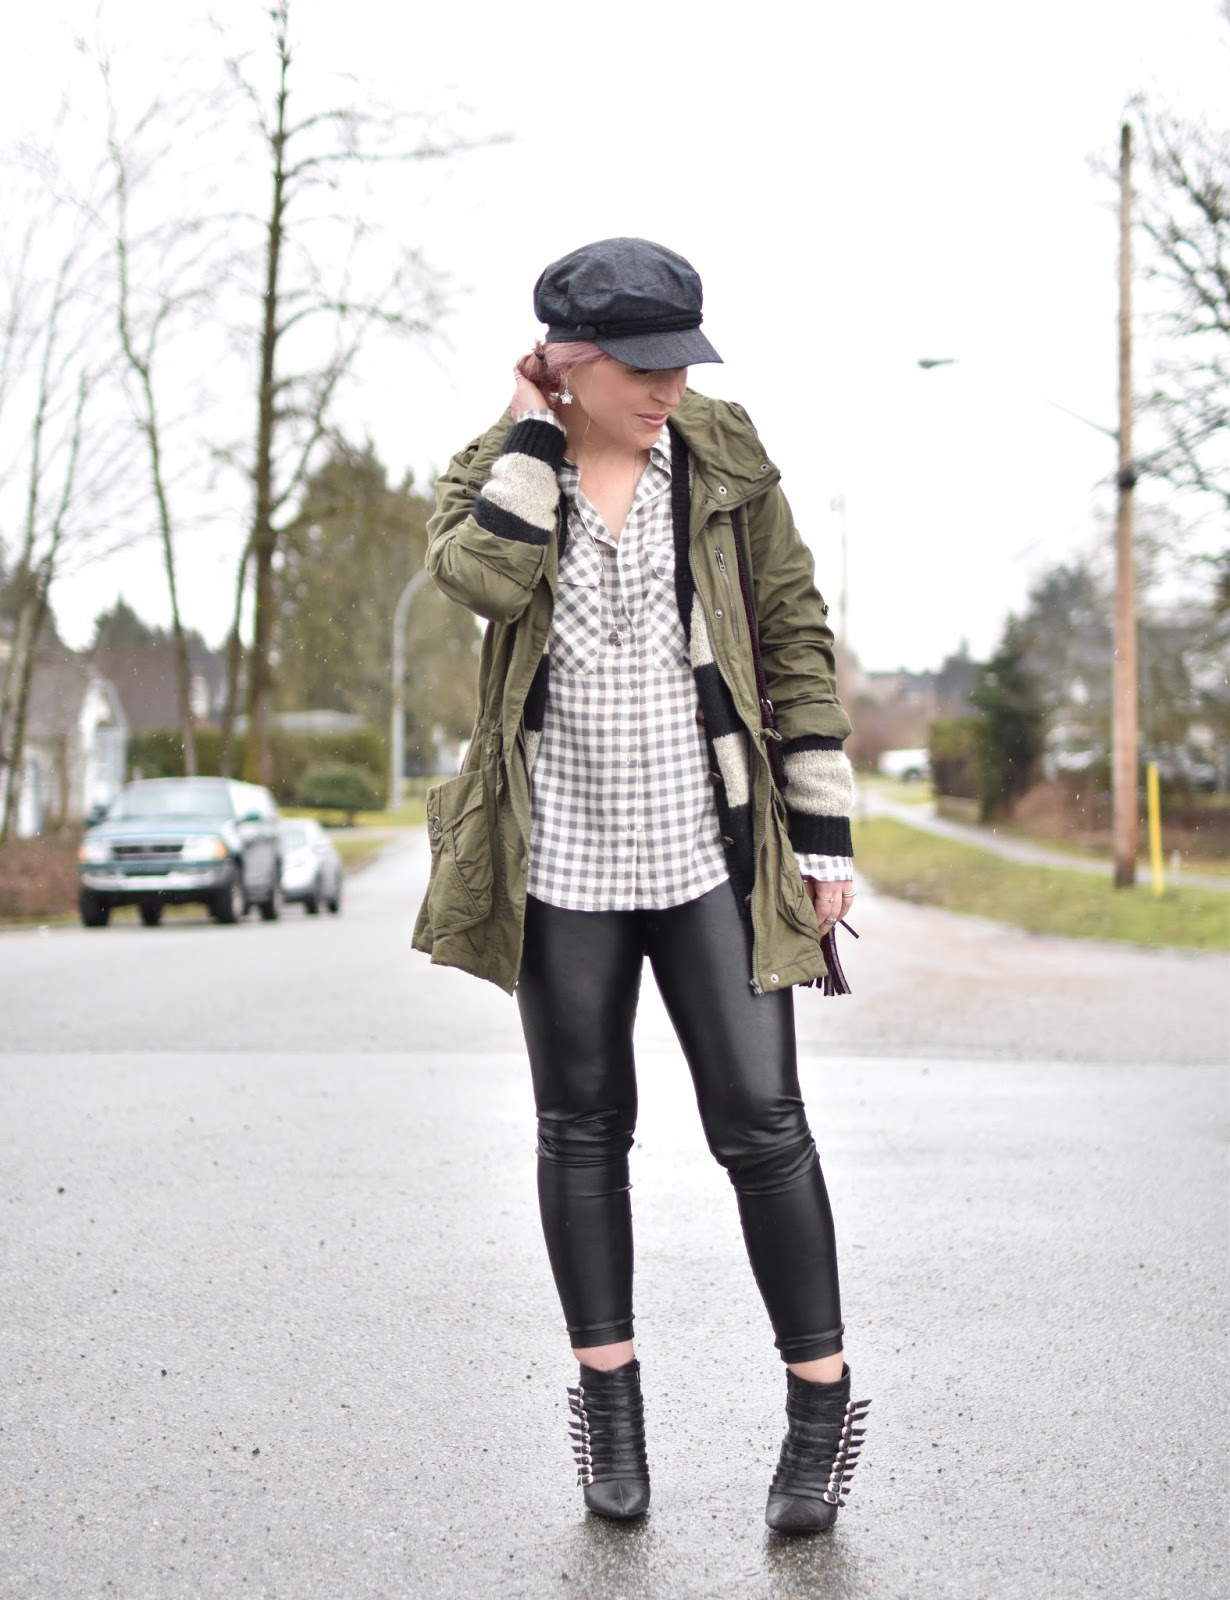 Monika Faulkner outfit inspiration - styling a baker boy cap with a gingham shirt, striped cardigan, army-style parka, and vegan leather leggings